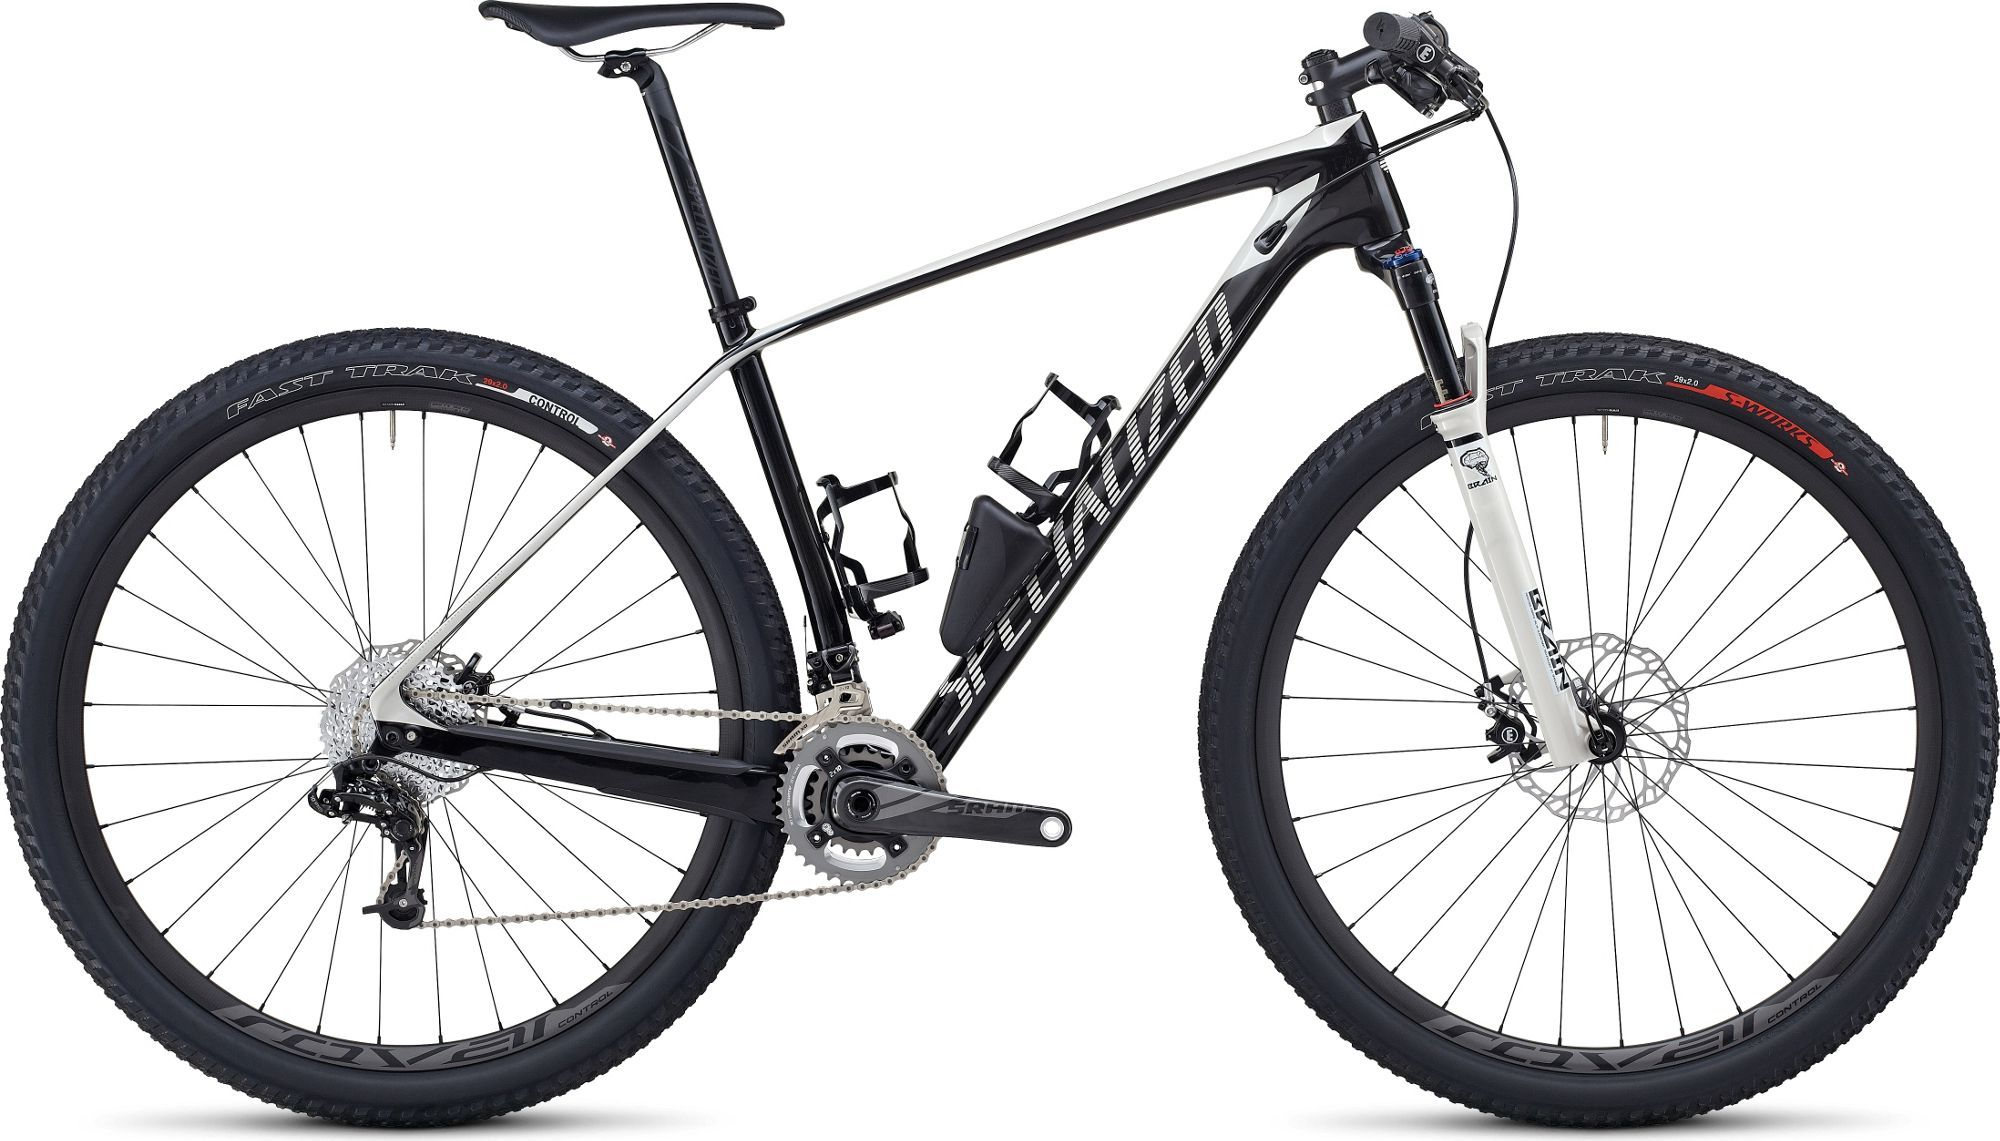 Specialized Stumpjumper Marathon Carbon 2014 review - The Bike List